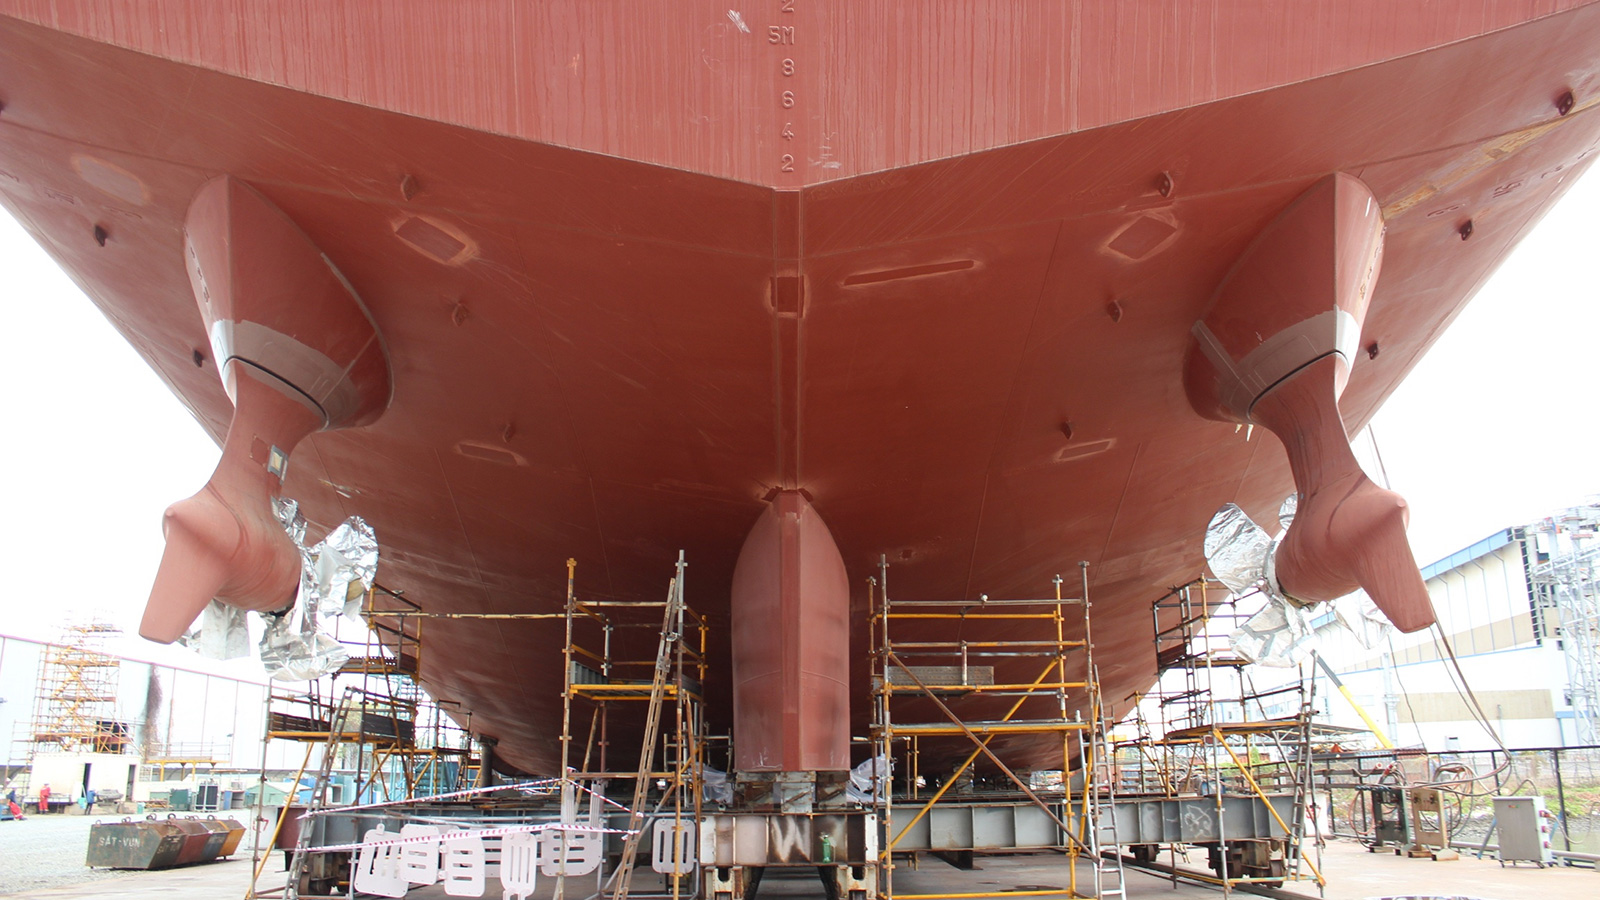 the-transom-of-82-metre-in-build-explorer-yacht-kilkea-at-the-vard-shipard-in-vietnam